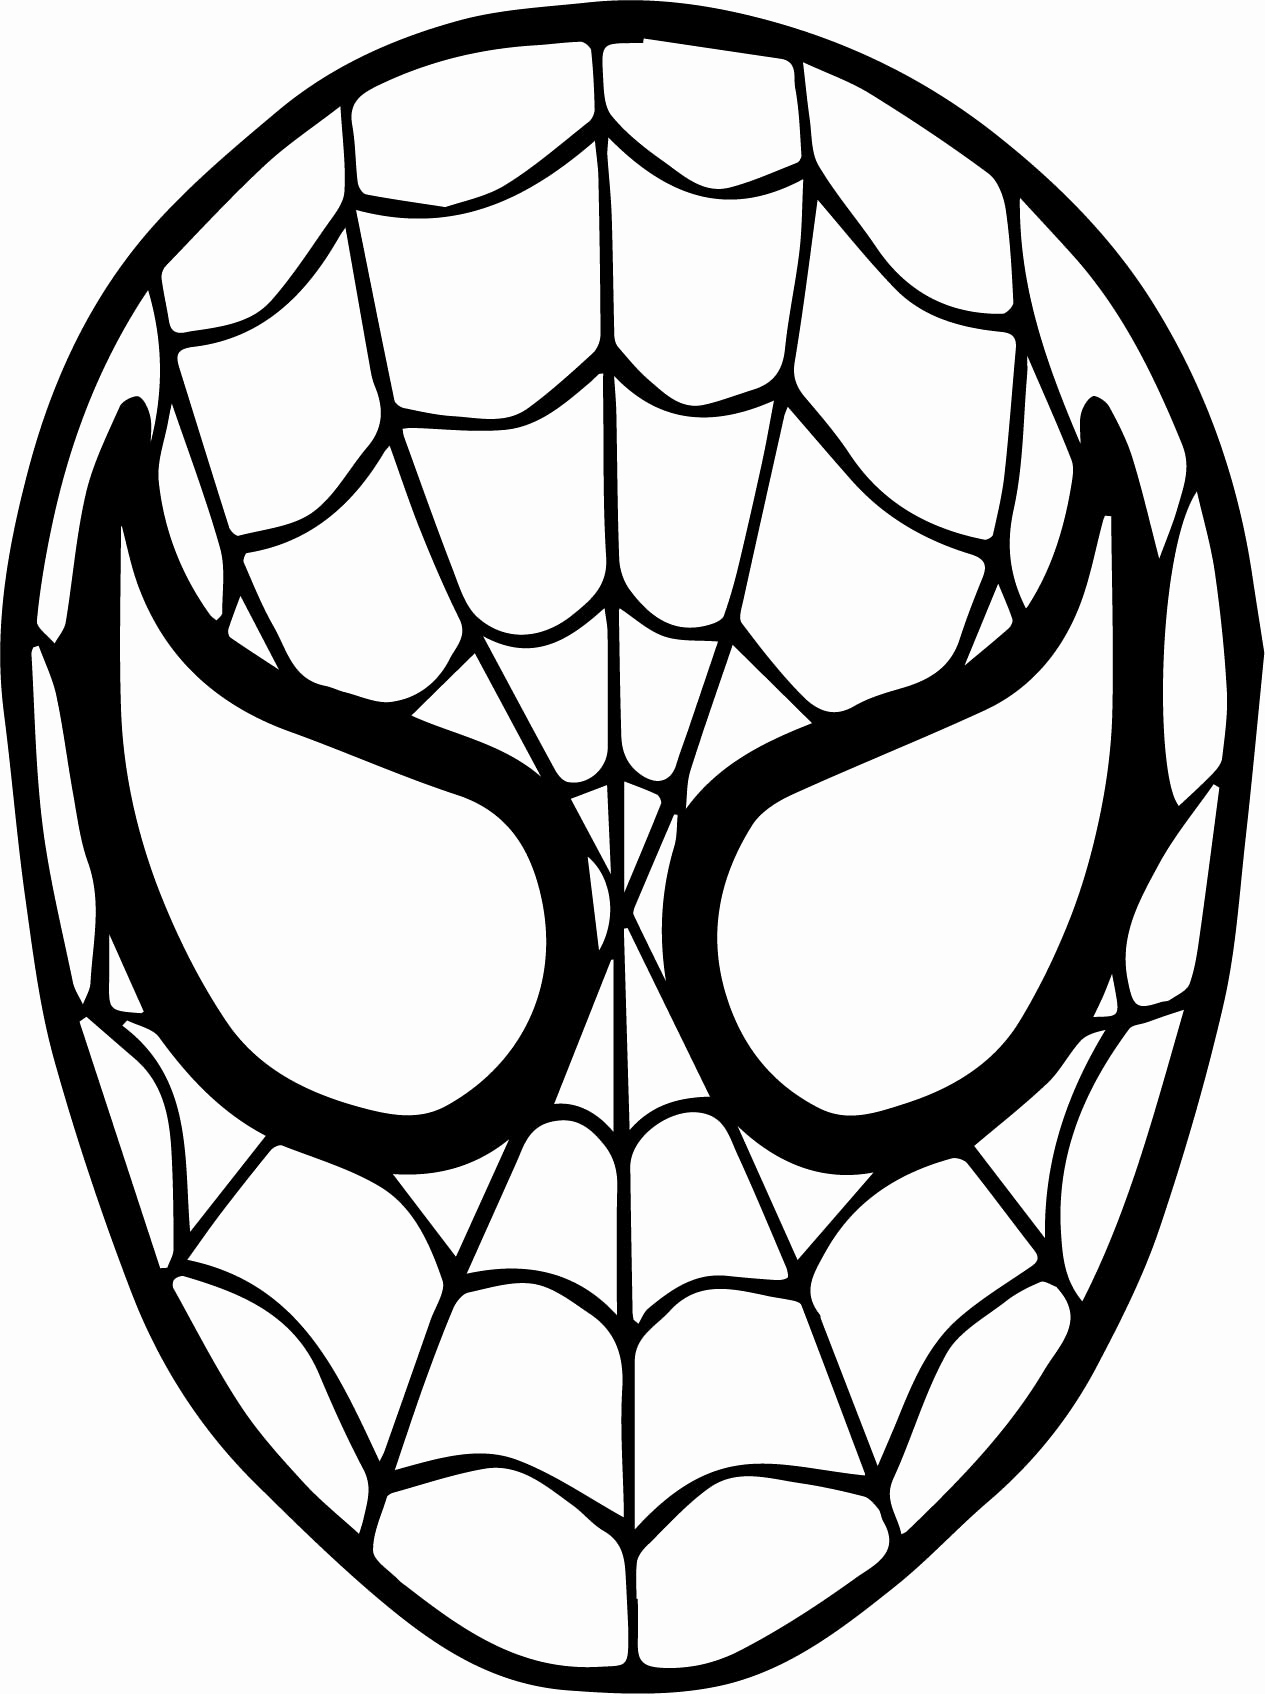 coloring spiderman drawing easy simple spiderman coloring pages at getcoloringscom free coloring drawing easy spiderman